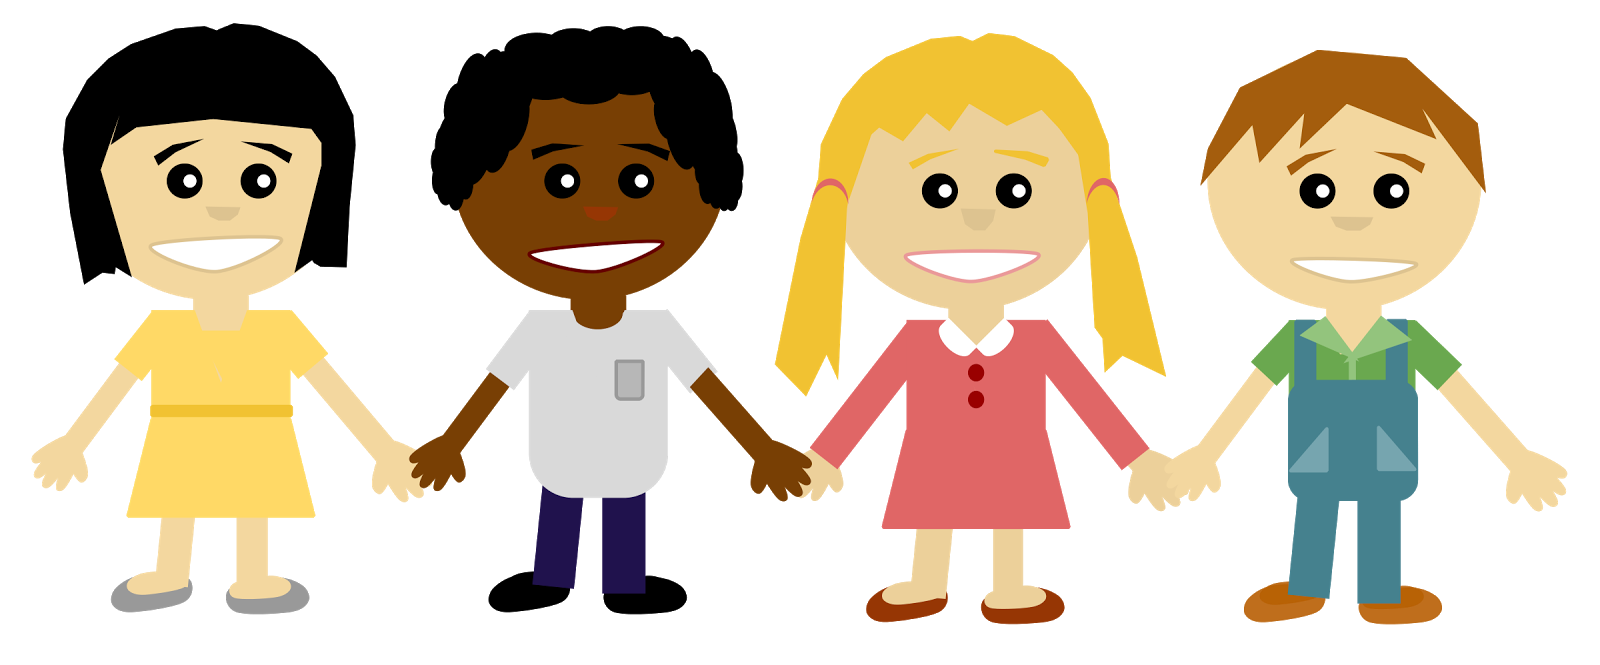 Friendship clipart peer group.  collection of friends